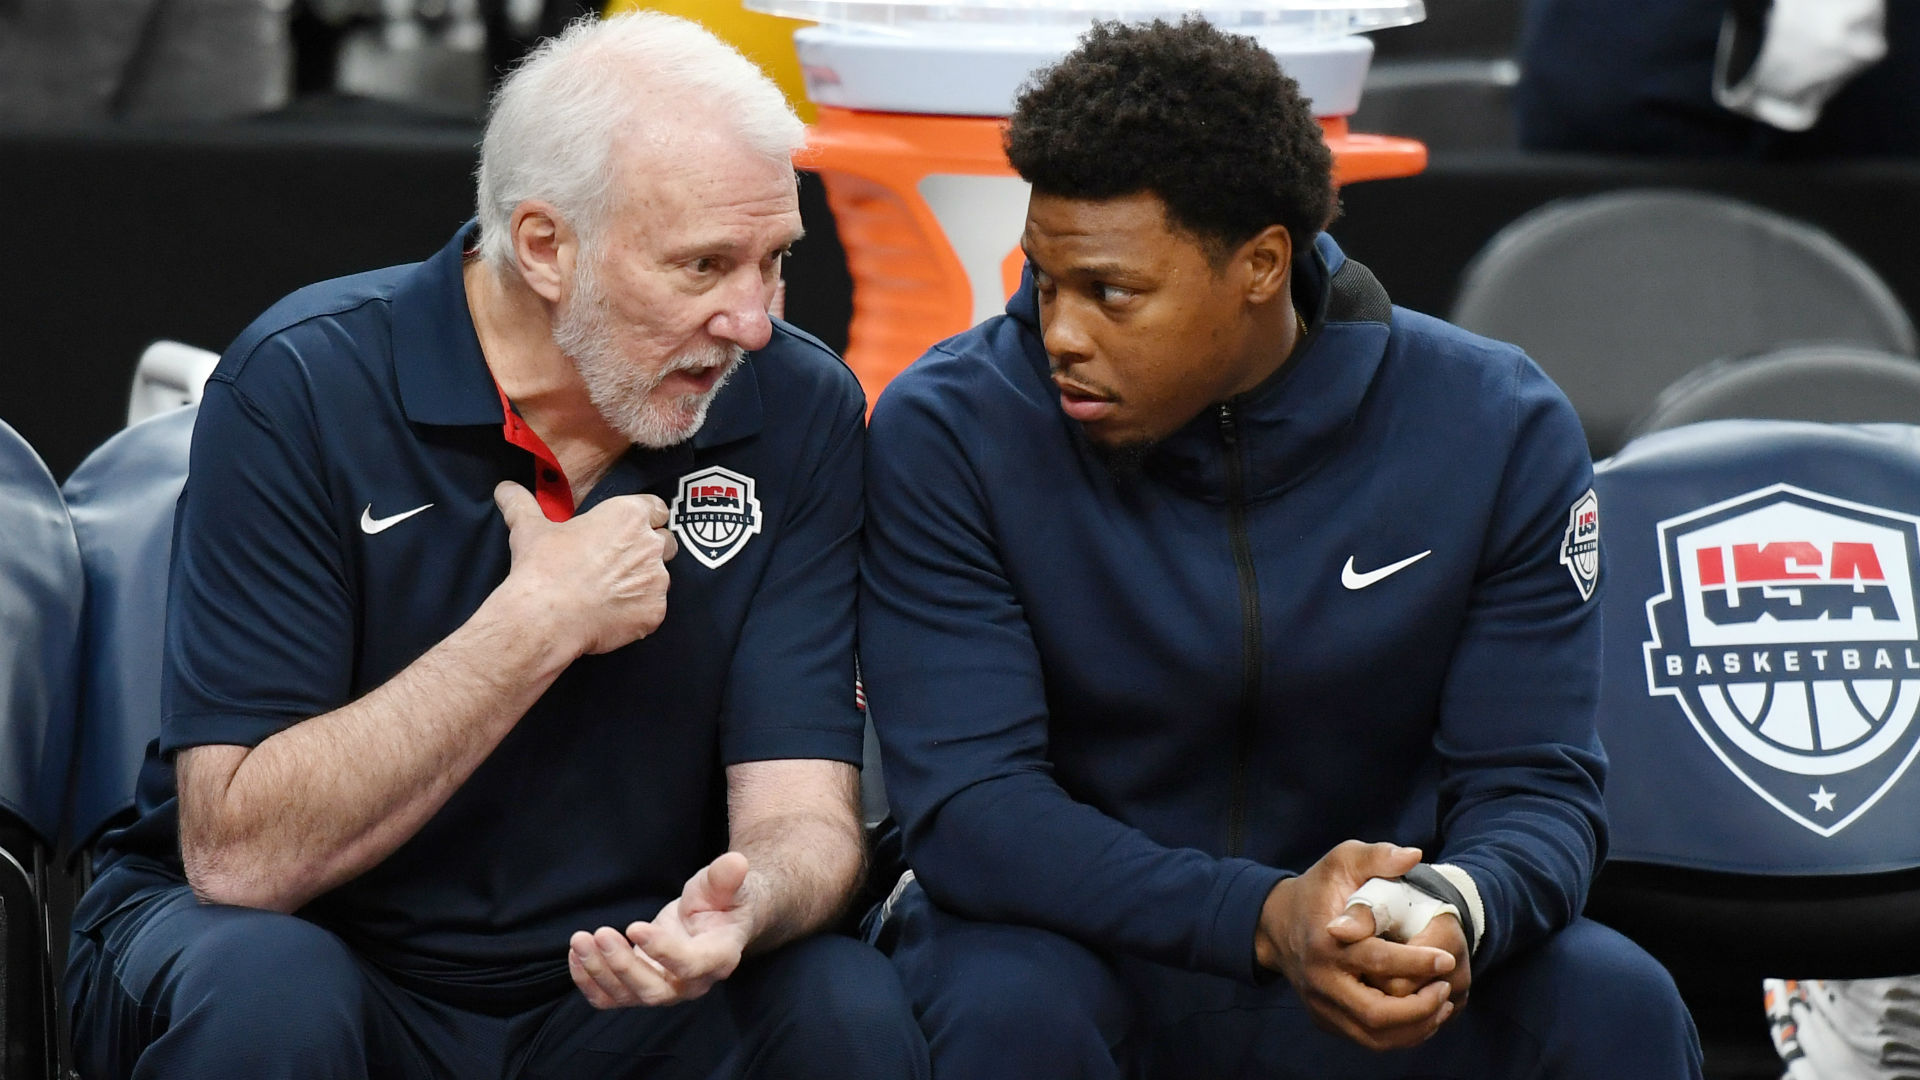 FIBA World Cup: Kyle Lowry withdraws from Team USA after not being cleared for 'full basketball activities'